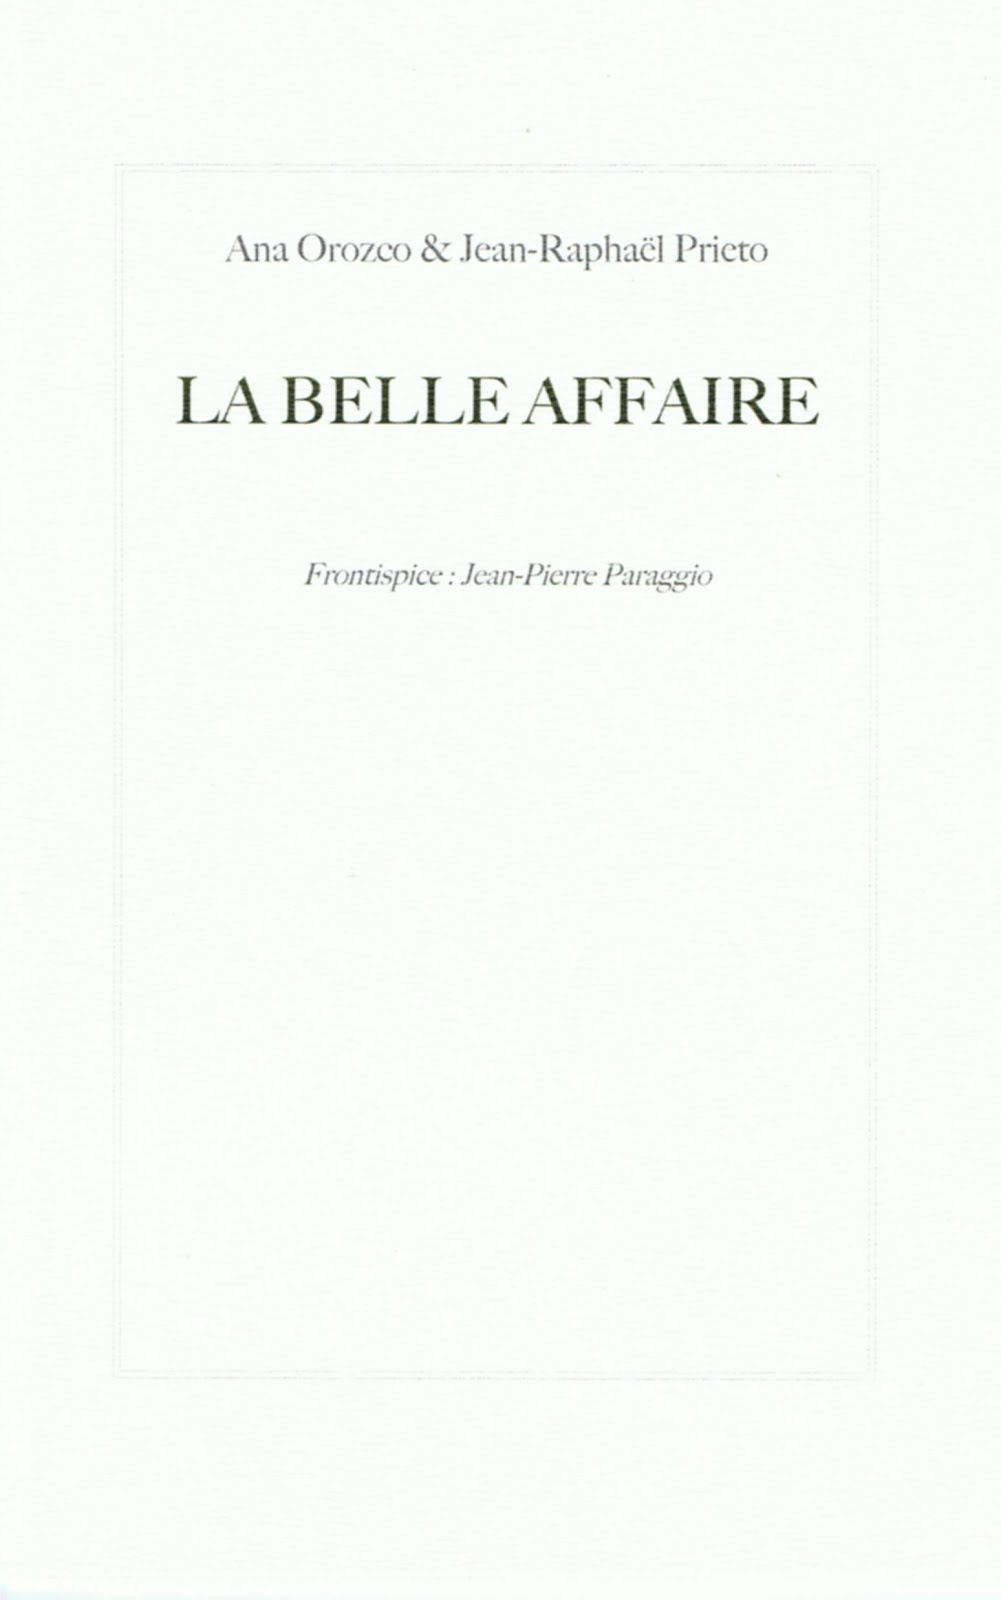 Ana OROZCO & Jean-Raphaël PRIETO, LA BELLE AFFAIRE, Collection de l'umbo